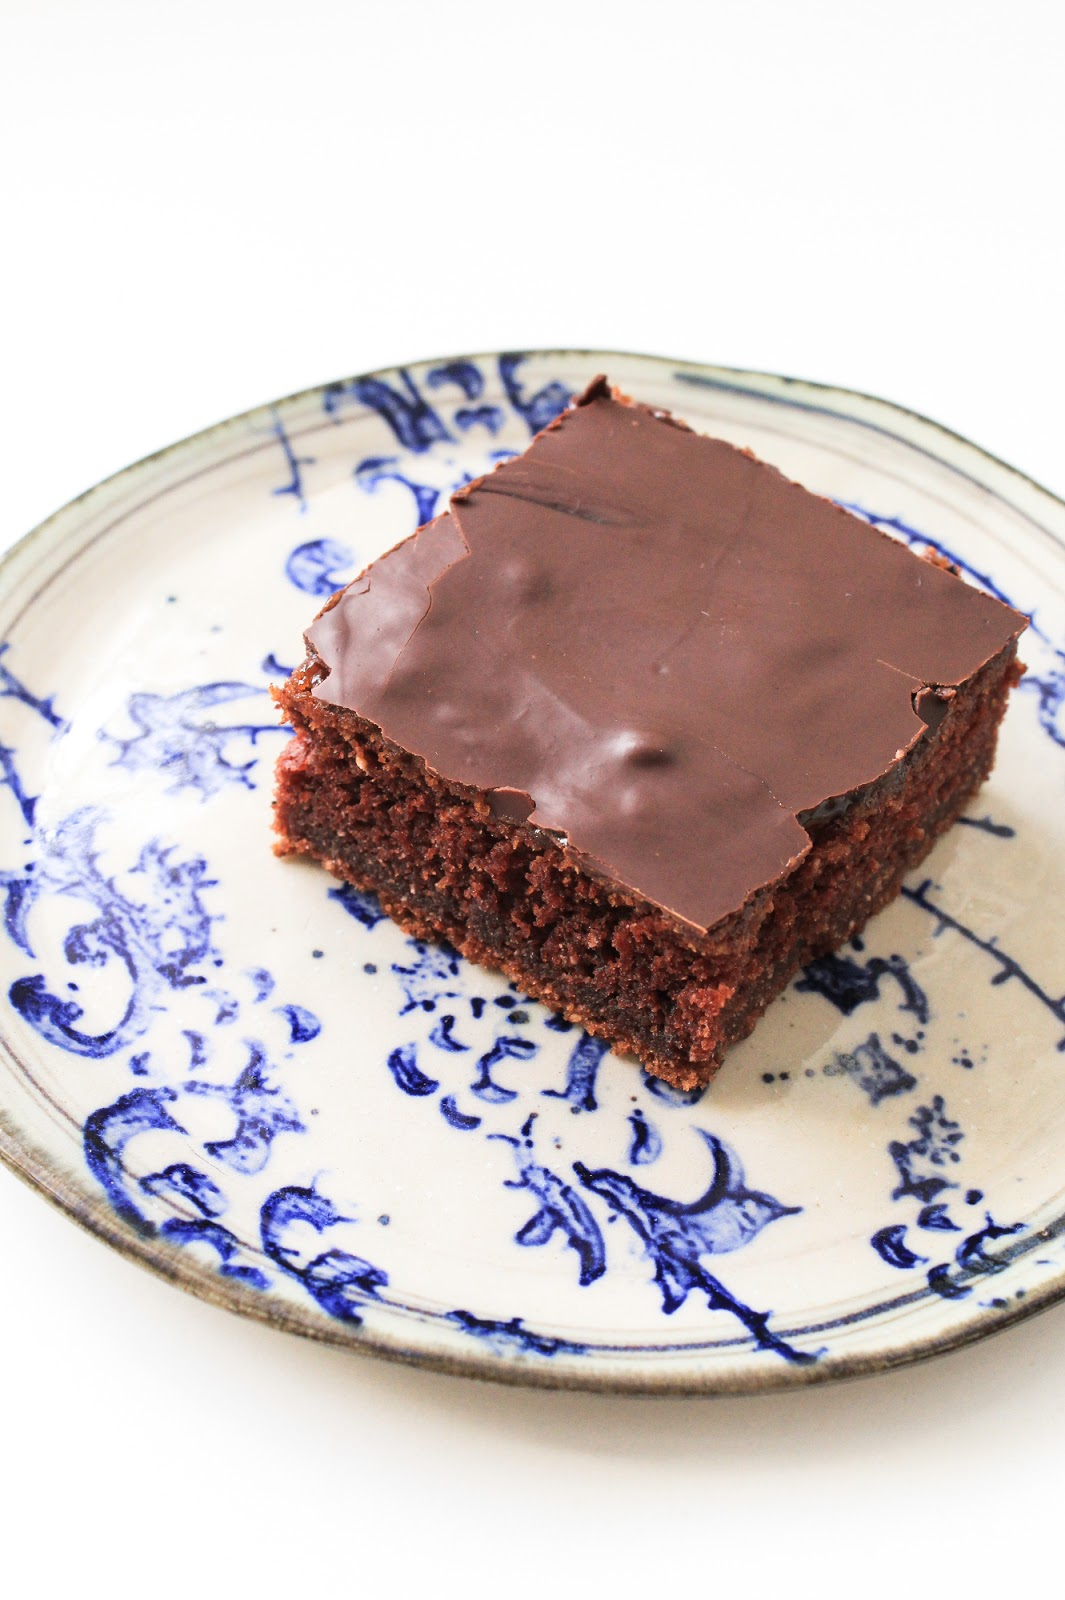 Easy Delicious Vegan Brownie Dessert, no dairy, no eggs. Biskvit brez mleka in jajc, veganski.